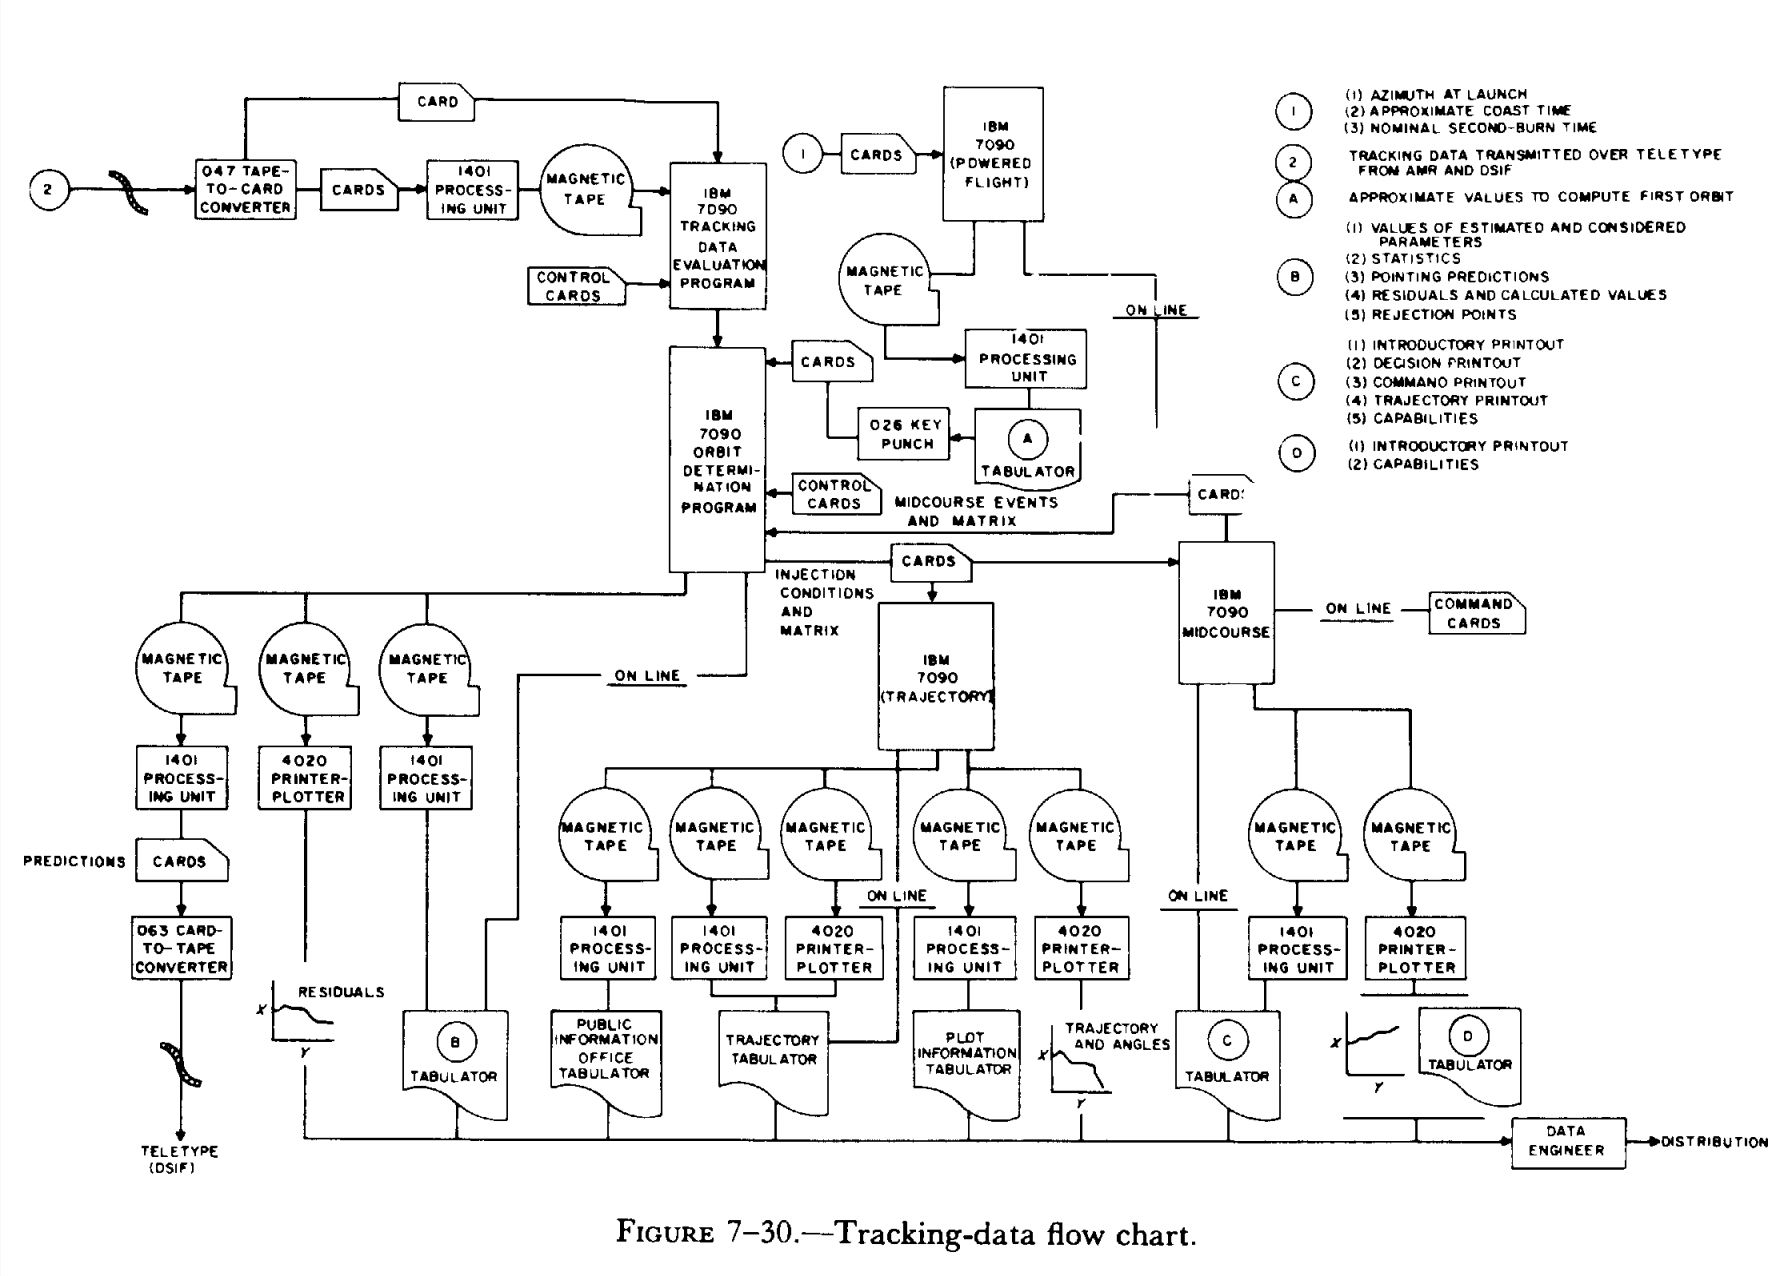 Construction Project Process Flow Chart: Tracking-data flow chart.jpg - Wikimedia Commons,Chart